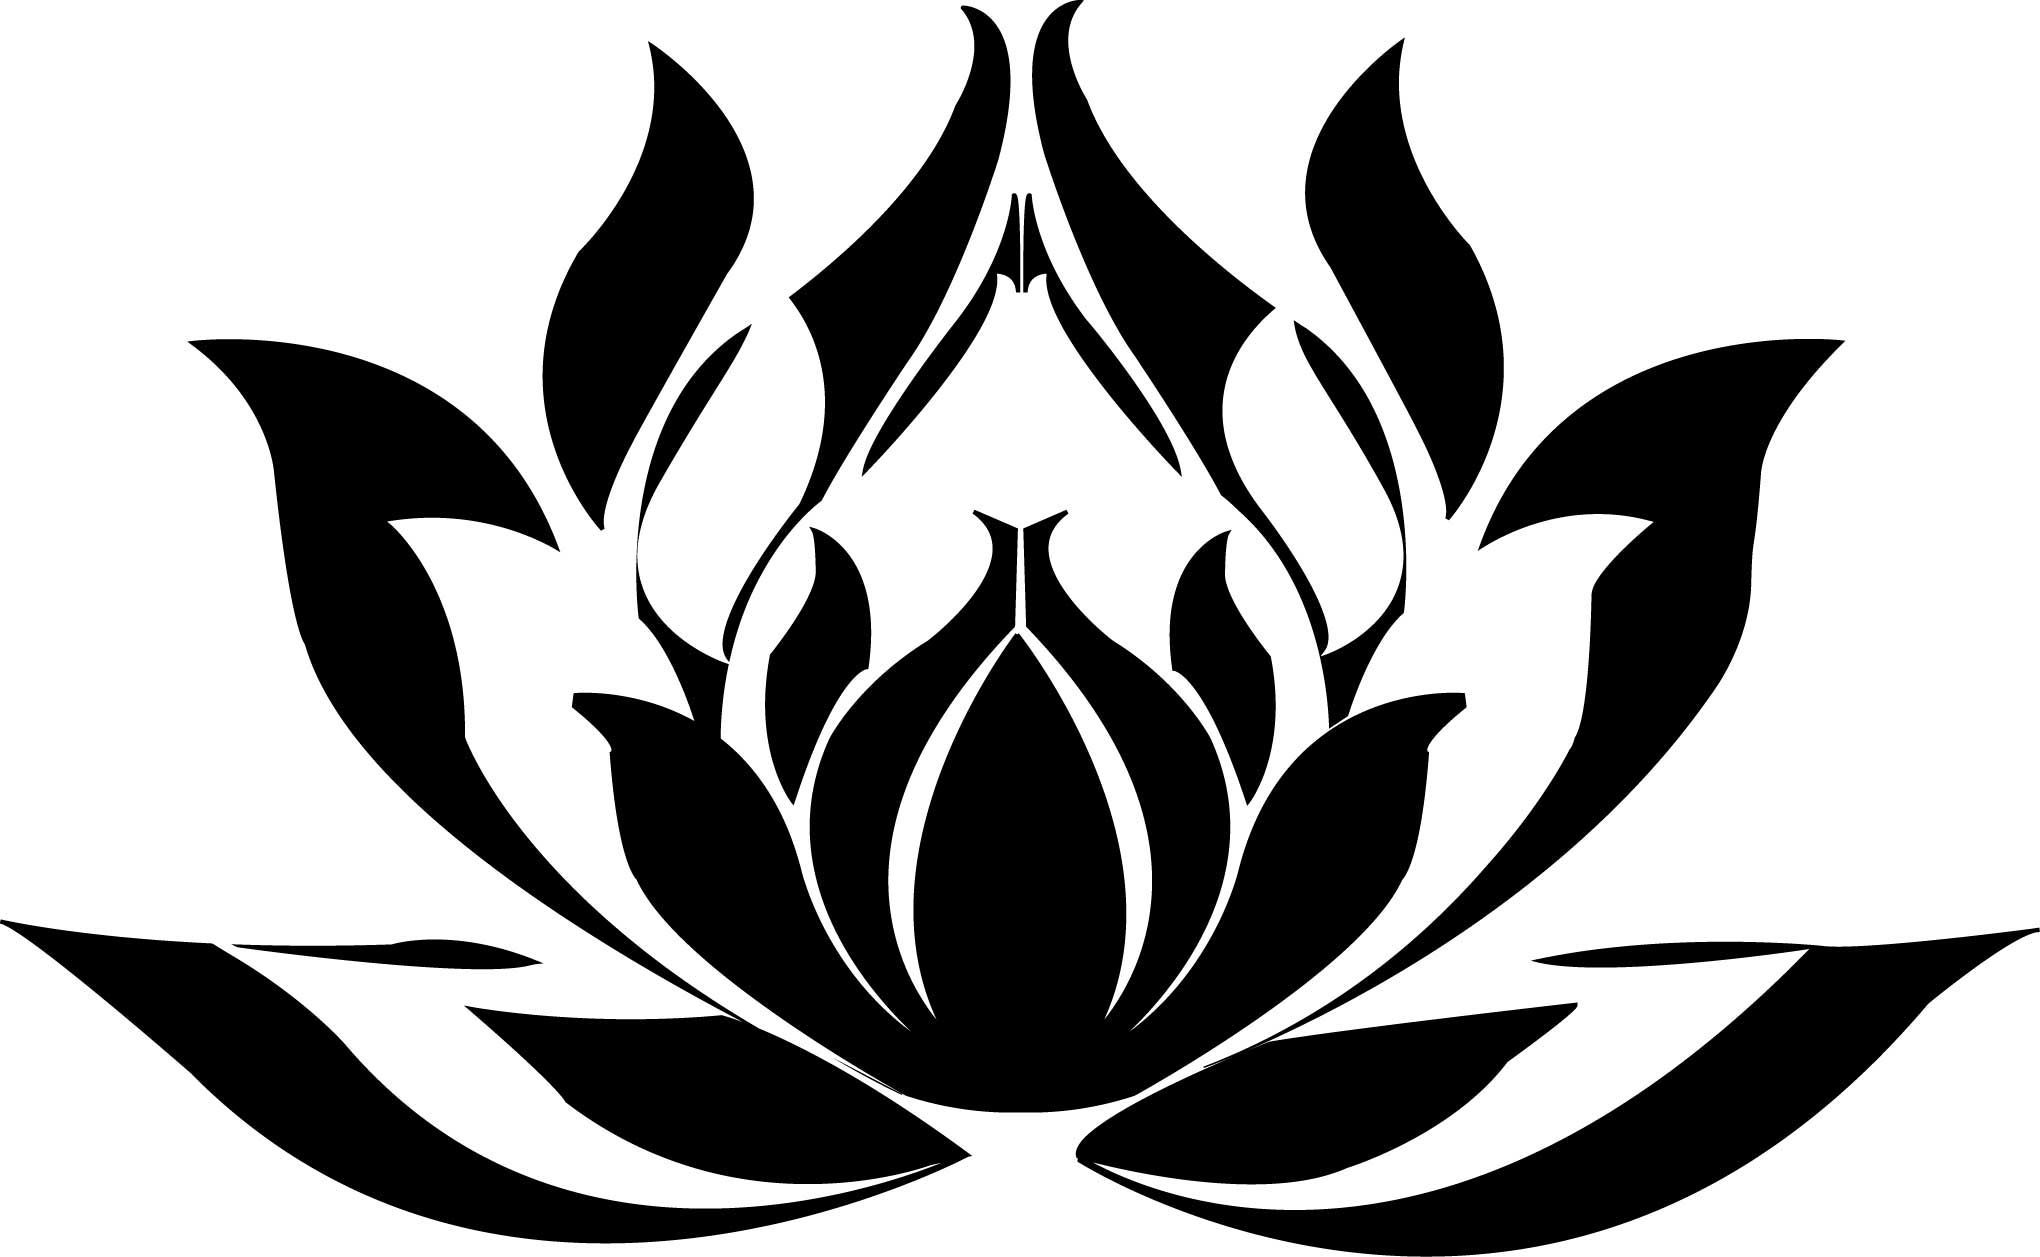 Black and white lotus flower drawings mightylinksfo